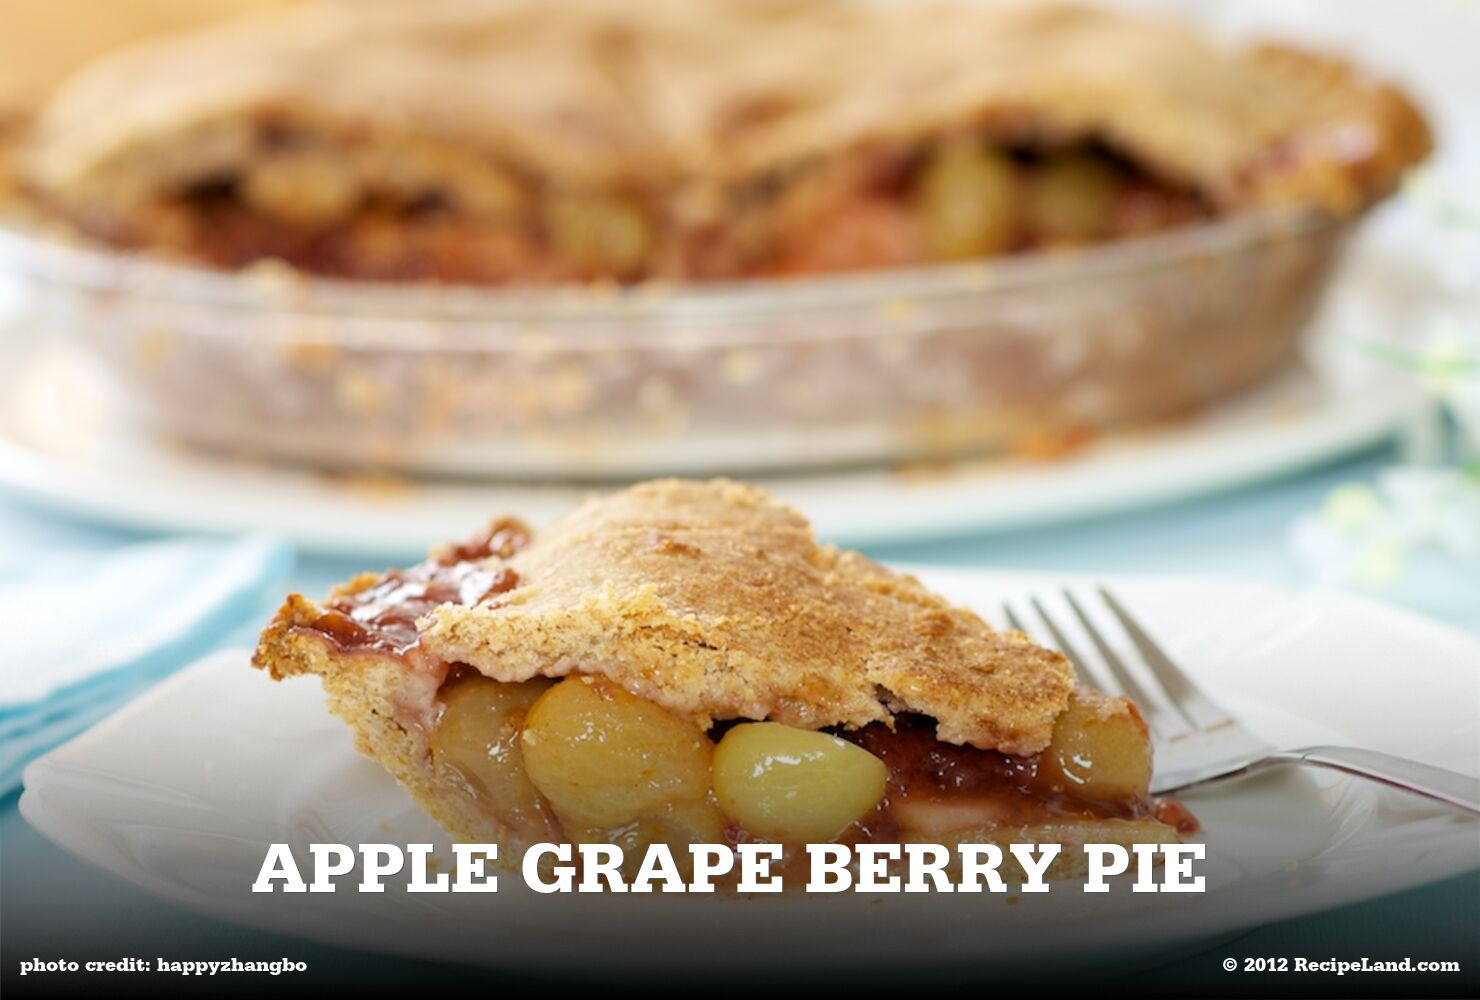 Apple Grape Berry Pie